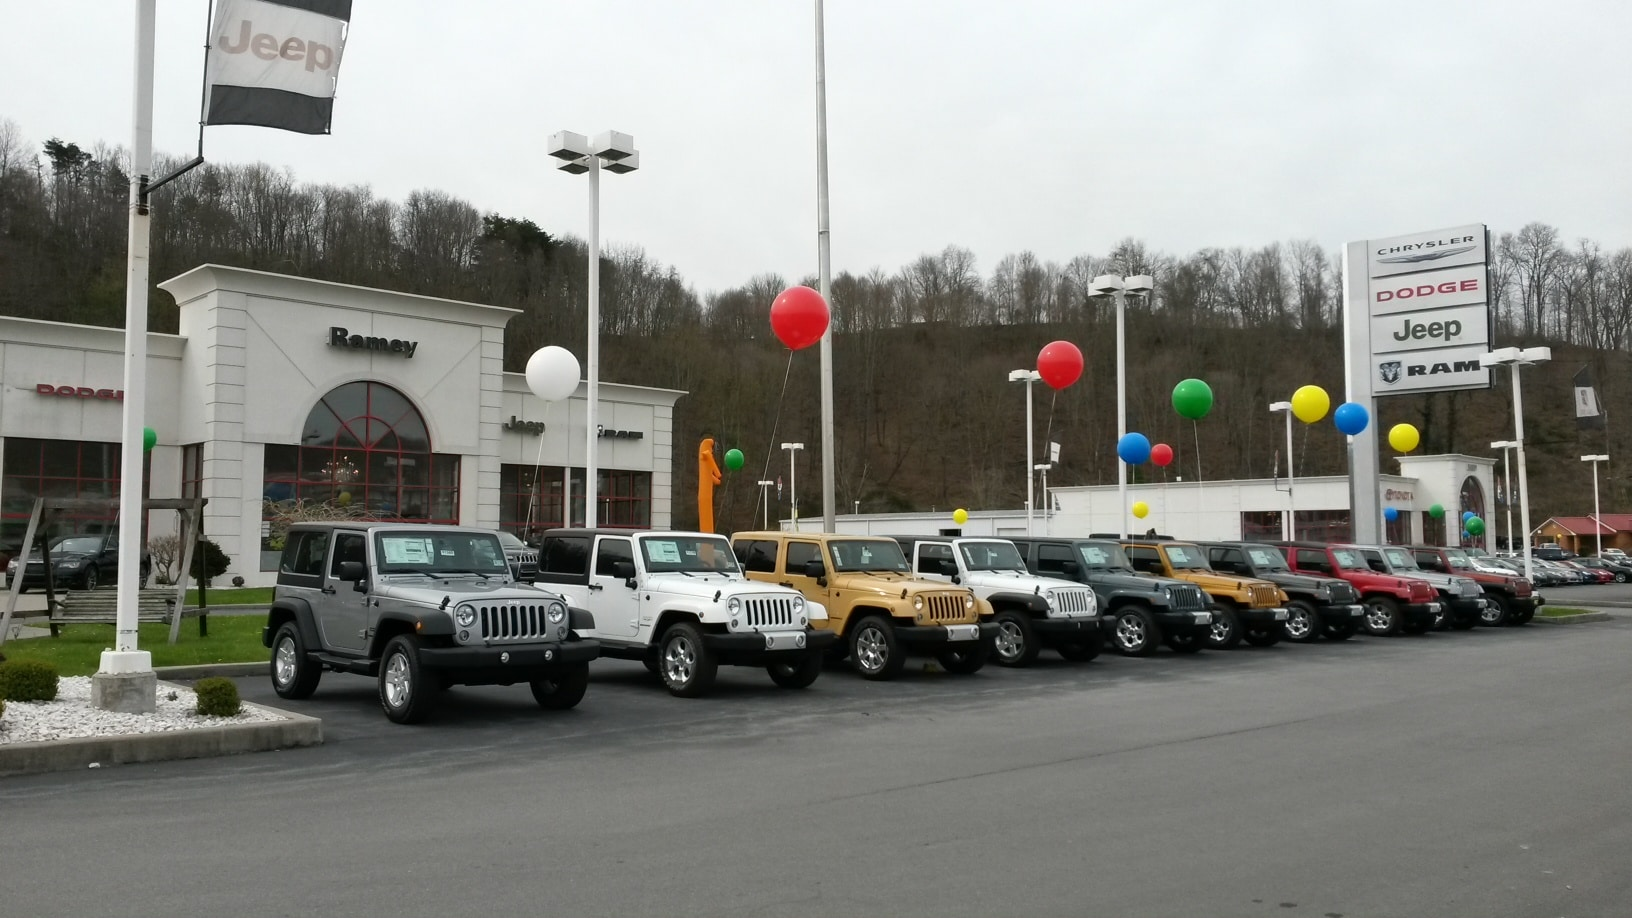 Dodge Dealer Princeton Wv >> About Ramey Chrysler Dodge Jeep RAM FIAT | Princeton WV Car Dealer near Blacksburg VA